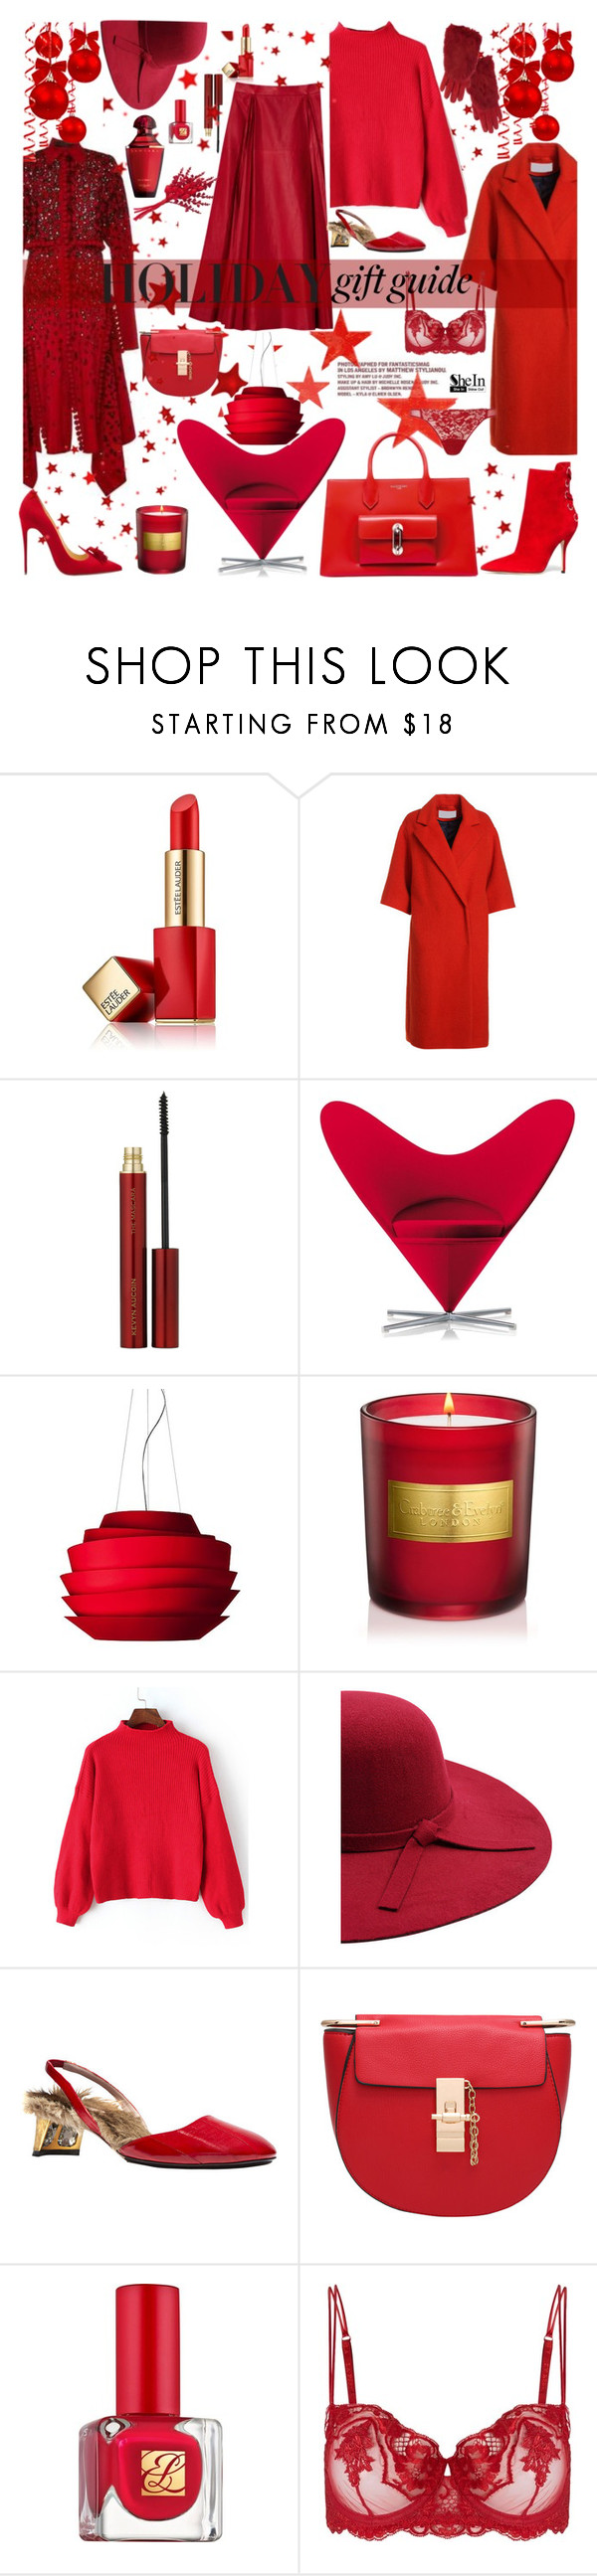 """""""Belive in the magic of the season"""" by naki14 ❤ liked on Polyvore featuring Estée Lauder, Proenza Schouler, Kevyn Aucoin, Vitra, Foscarini, Gucci and La Perla"""